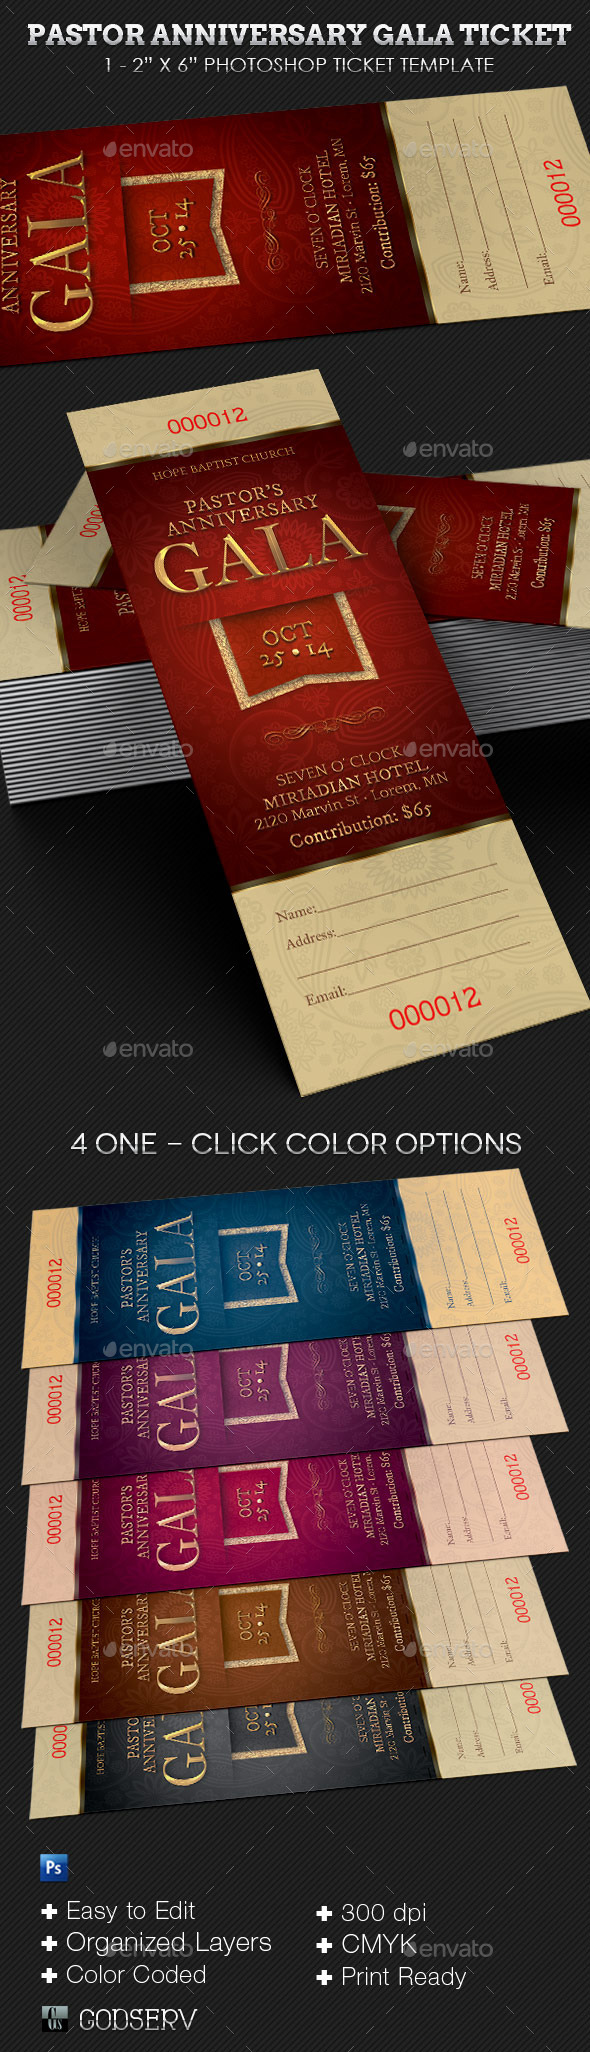 Pastor Anniversary Gala Ticket Template - Miscellaneous Print Templates